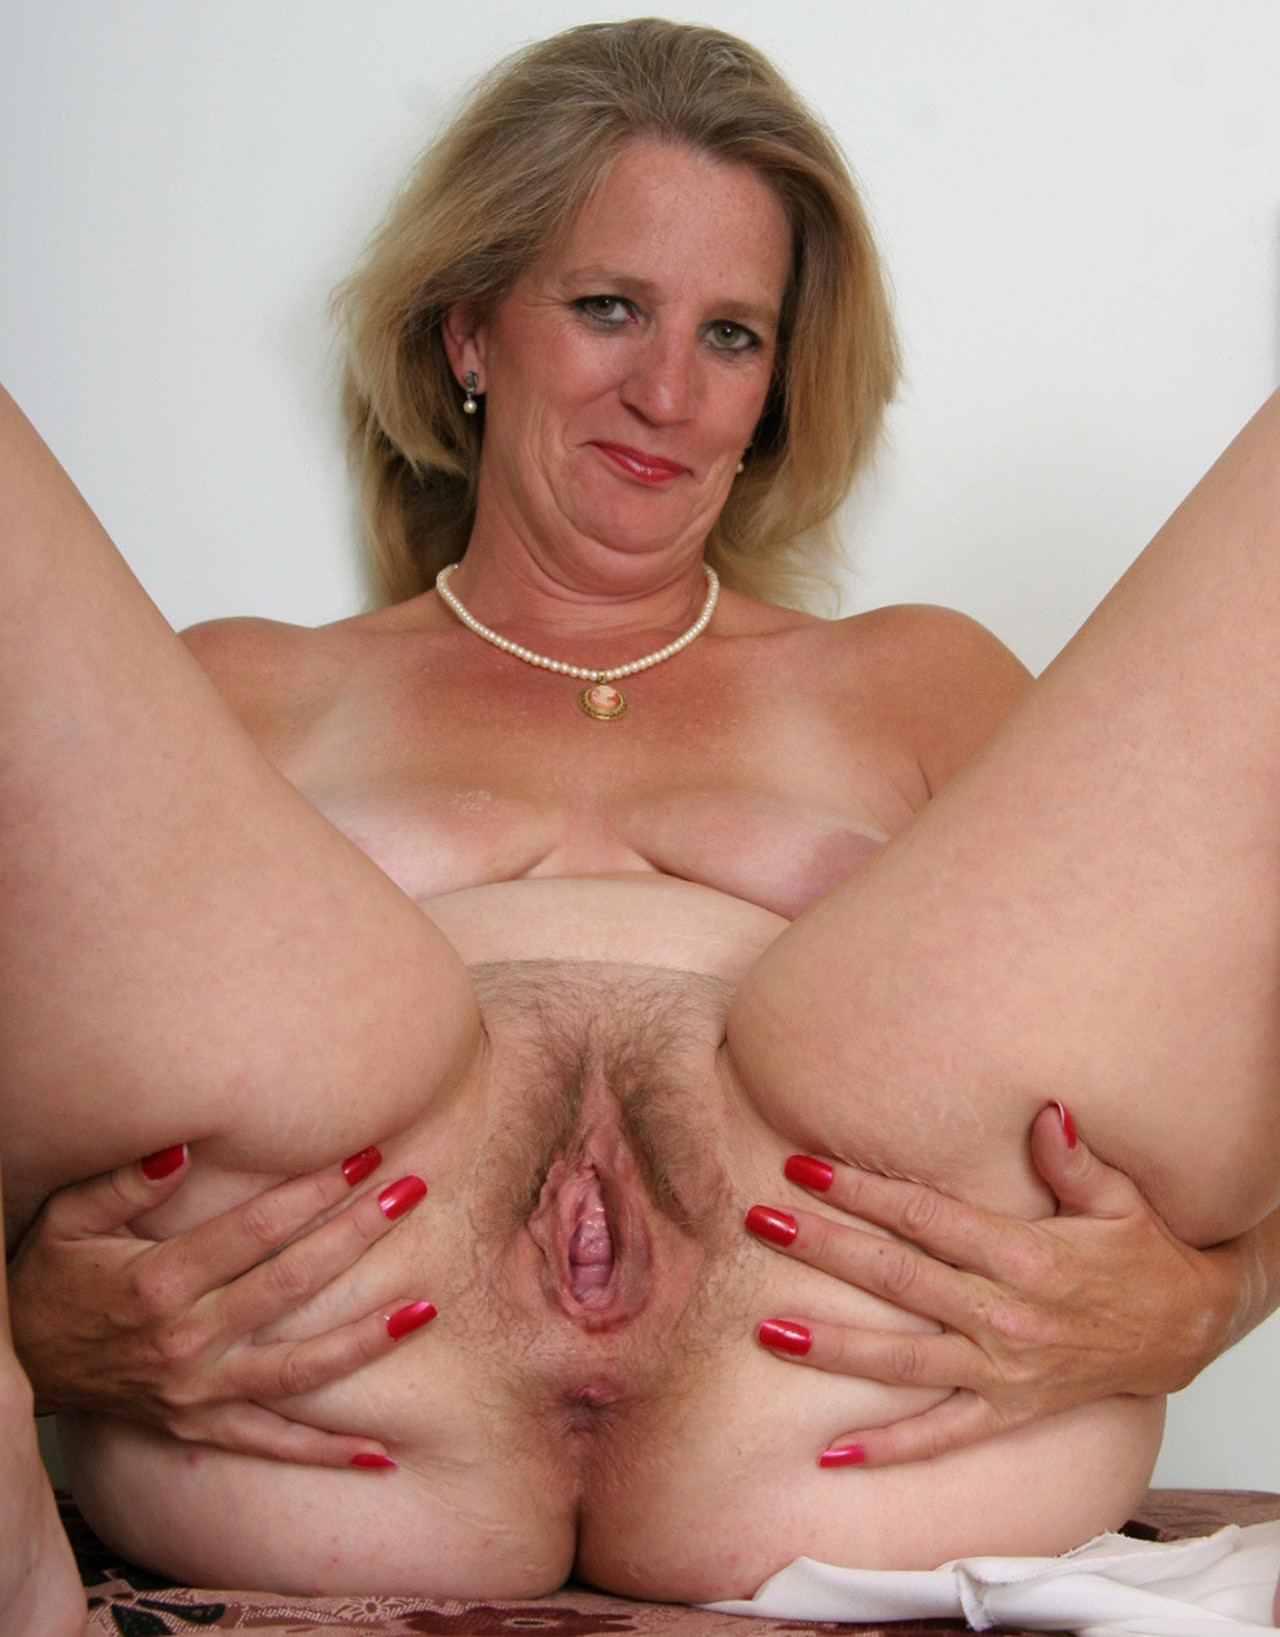 Mature hairy pussy women free porn